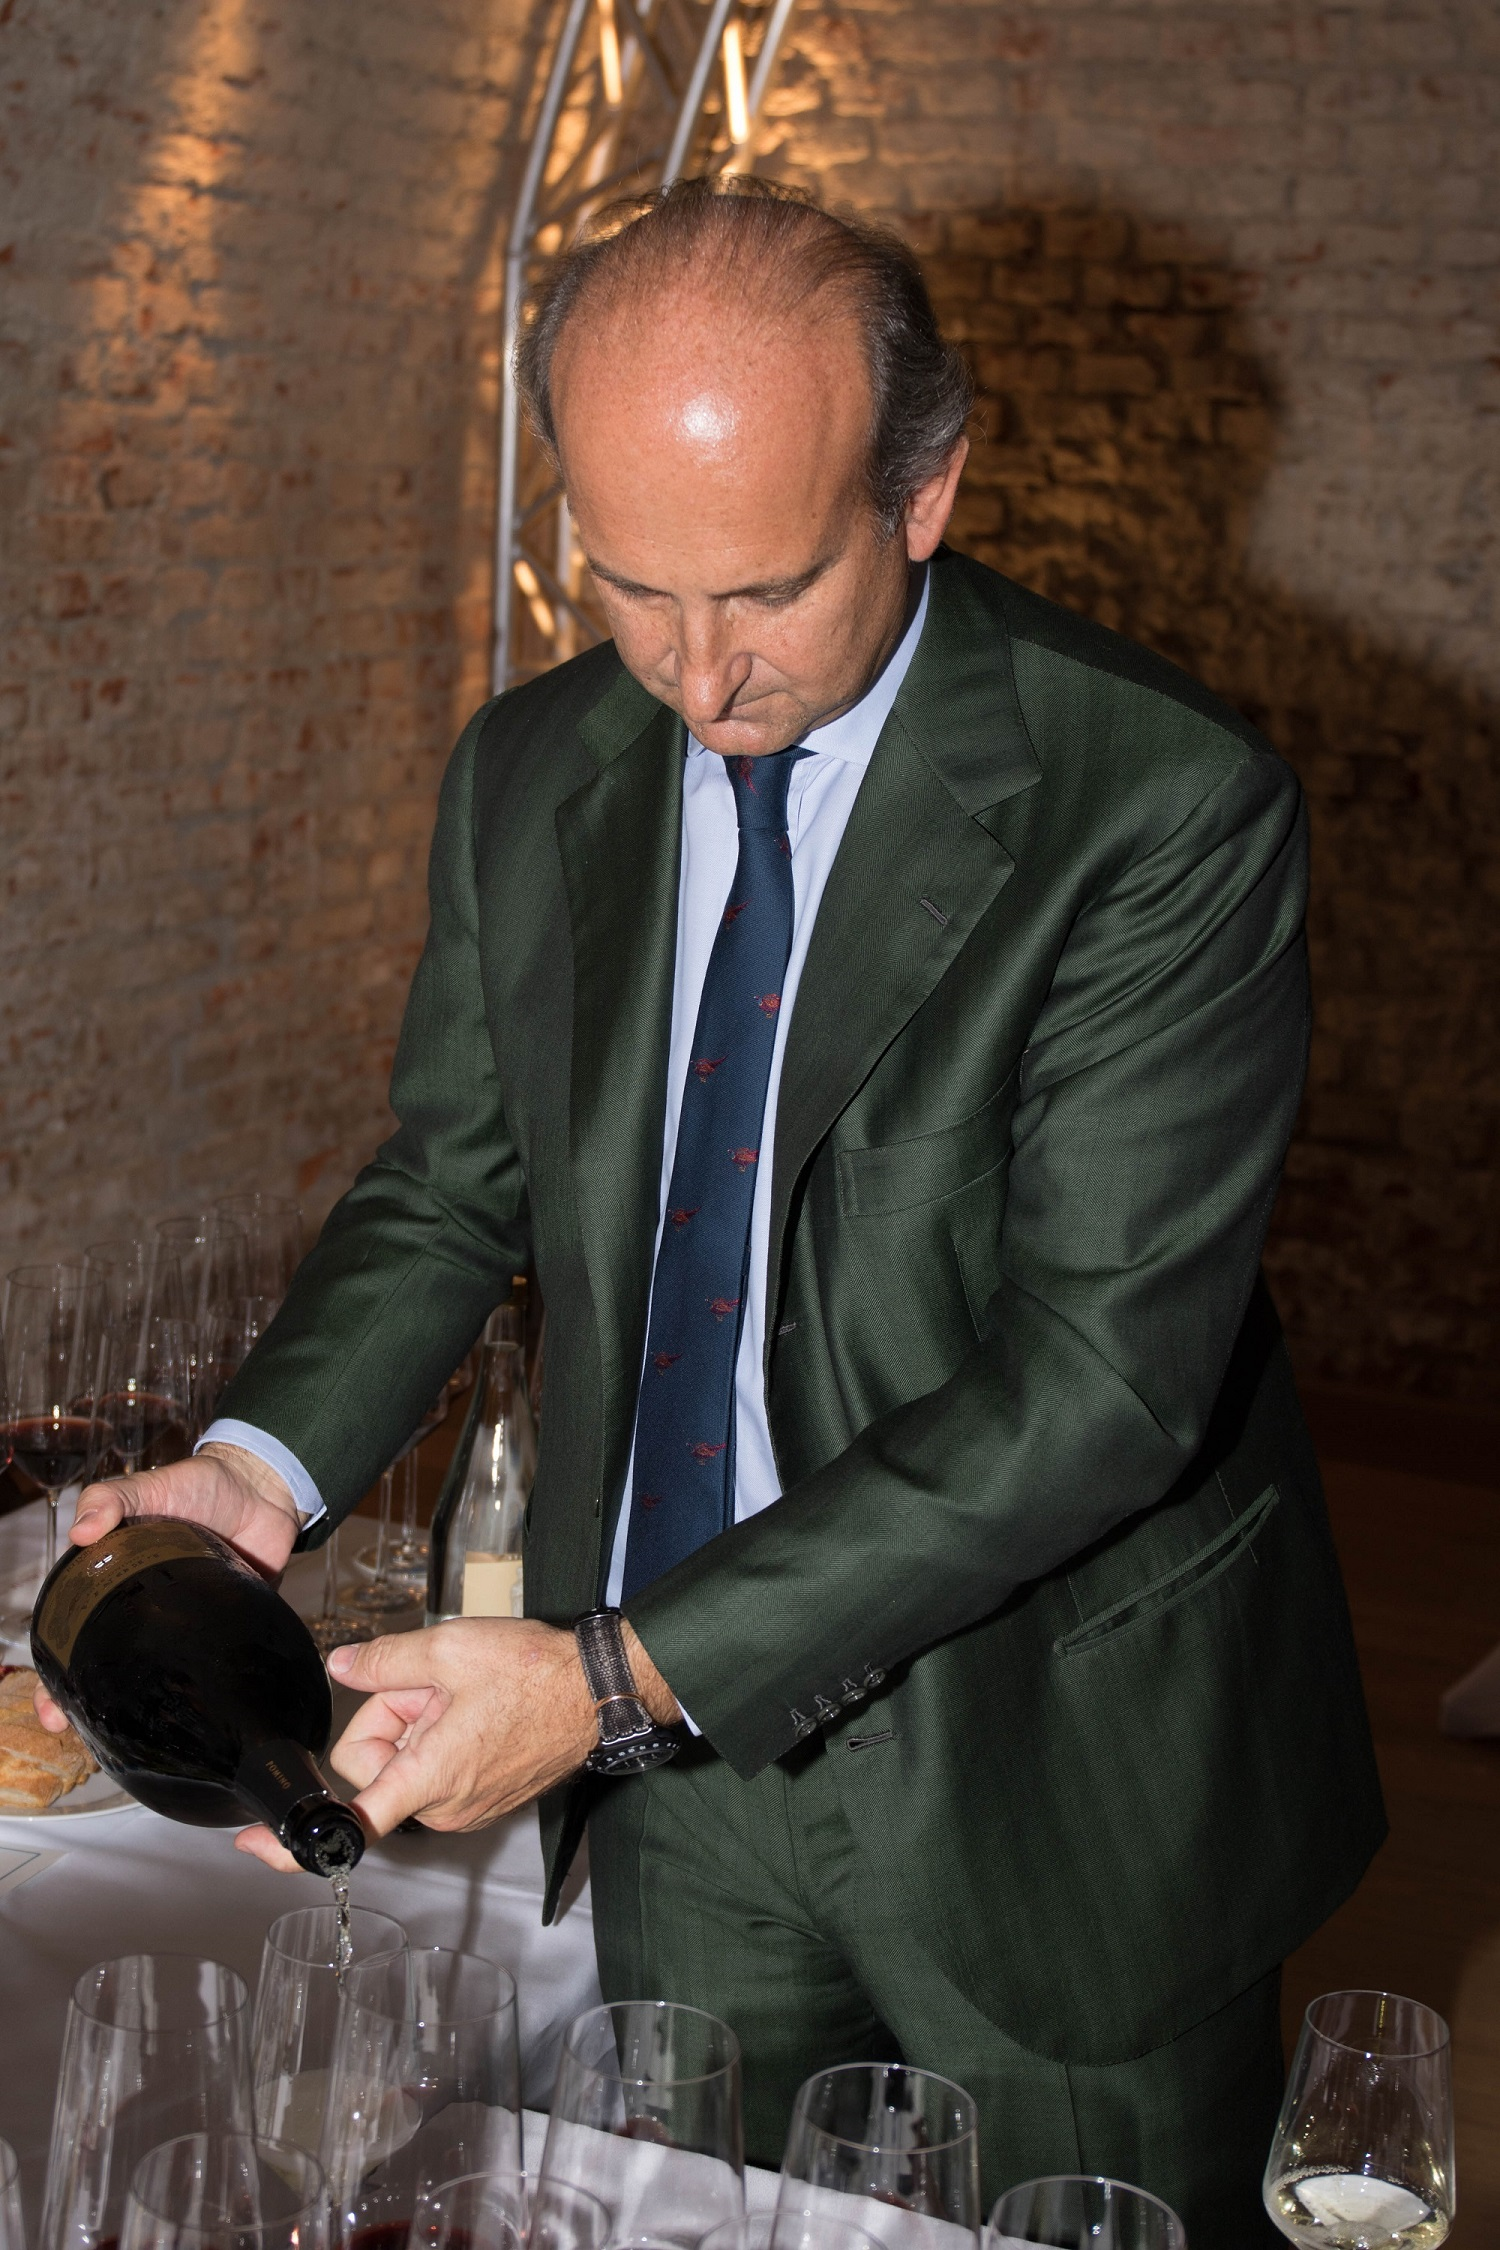 The noble touch - Marchese Lamberto de' Frescobaldi